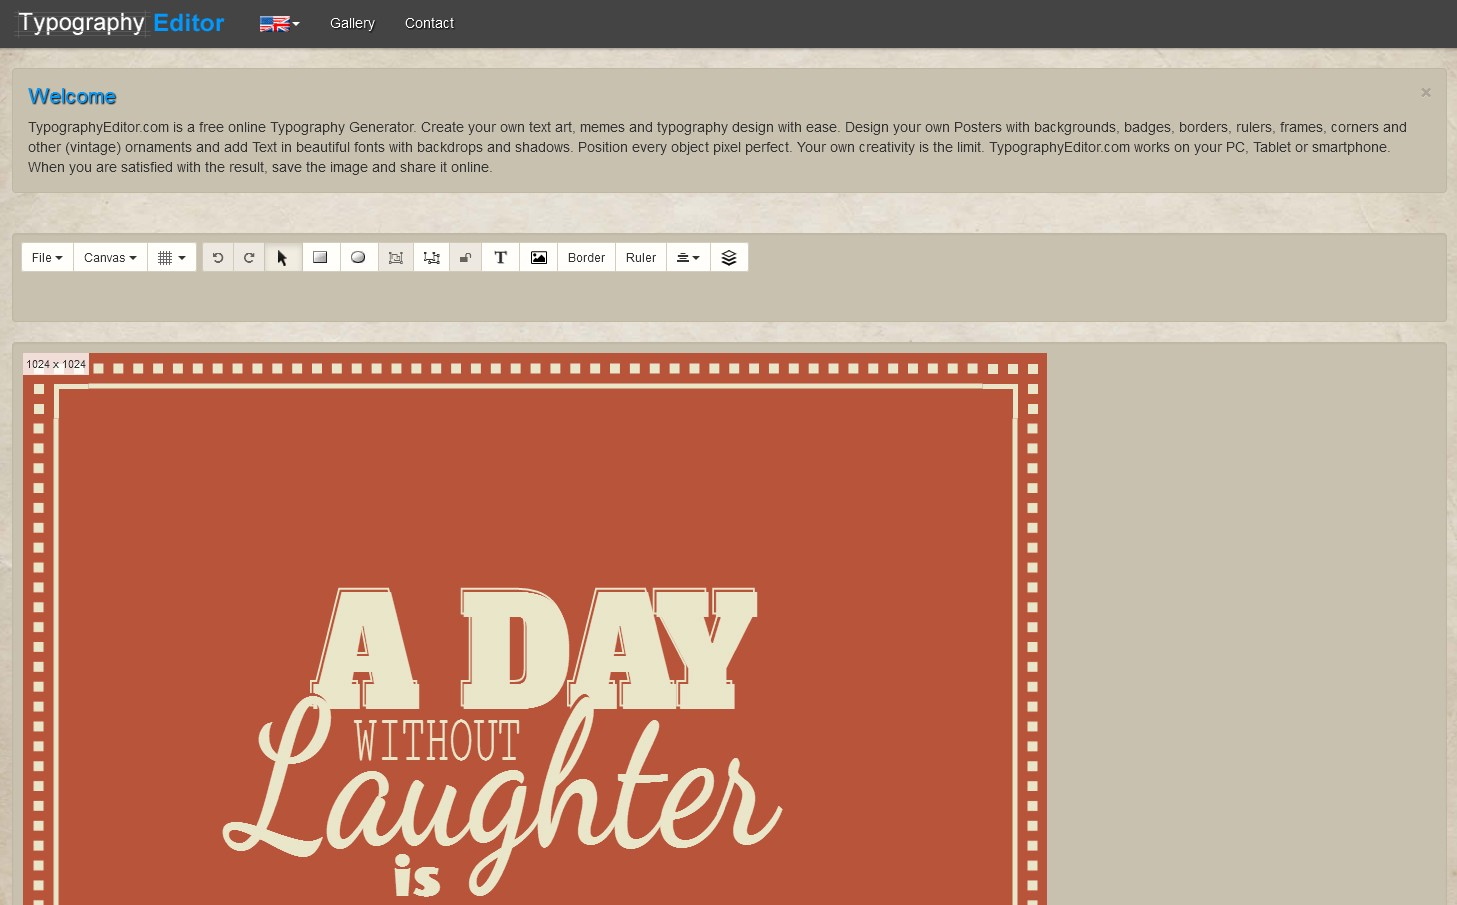 Typography Editor Is A Free And Online Tool To Make Typographic Posters Images